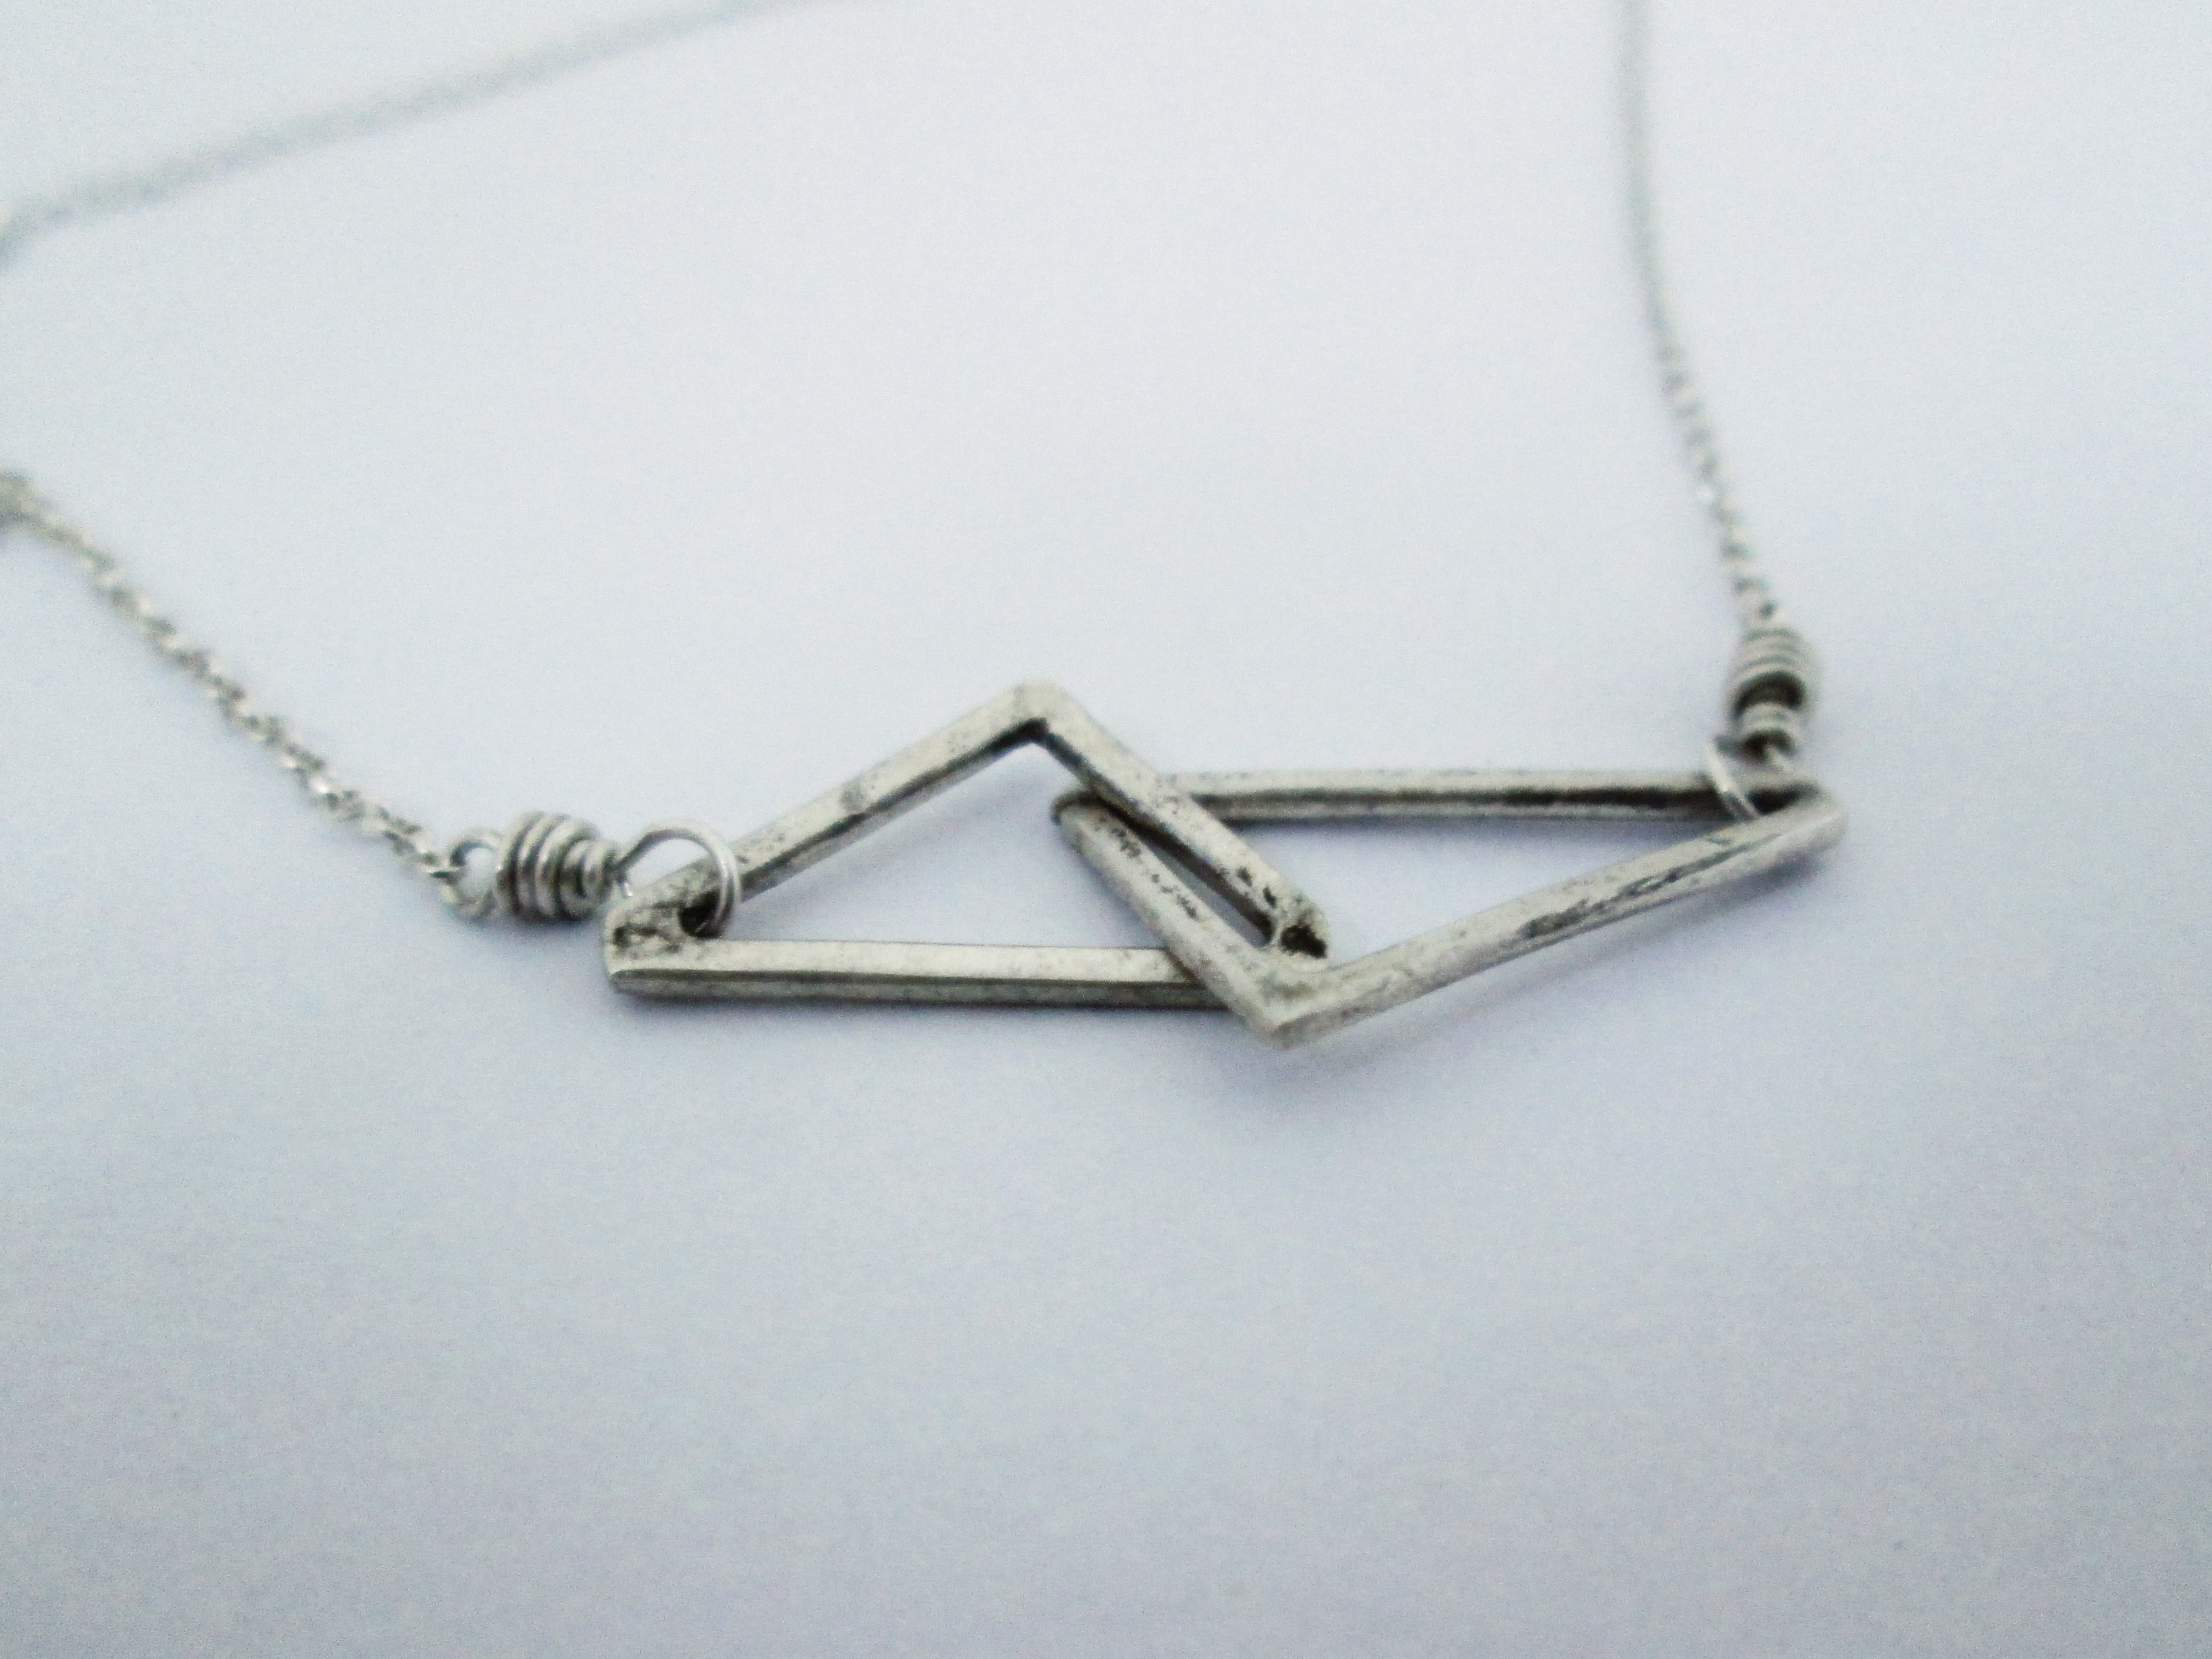 Silver Interlocking Triangle Necklace - The Chestnut Forge